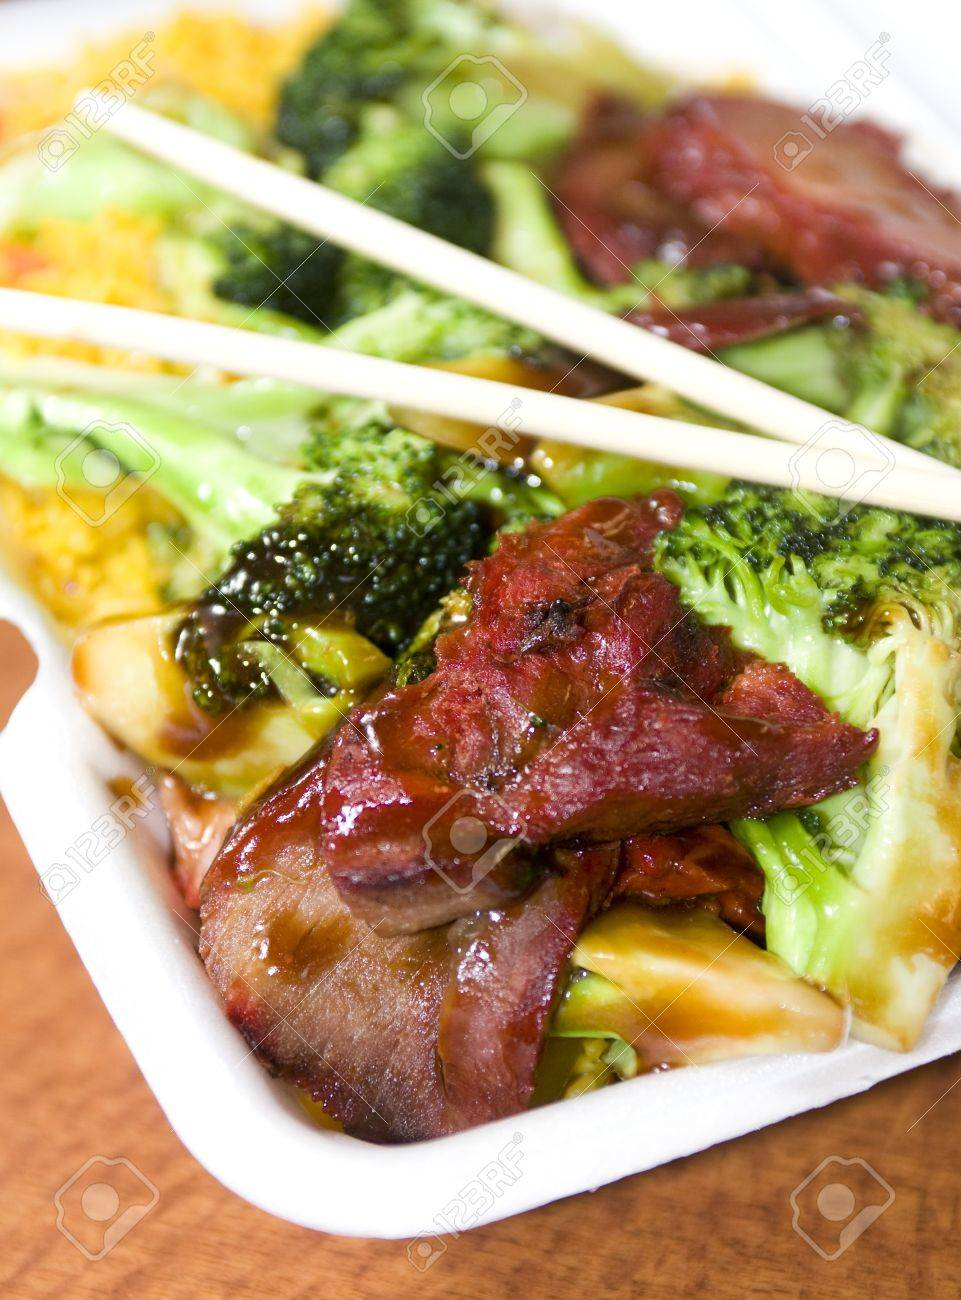 Chinese Food Roast Pork With Broccoli Fried Rice Restaurant Take Out Quick With Chop Sticks Stock